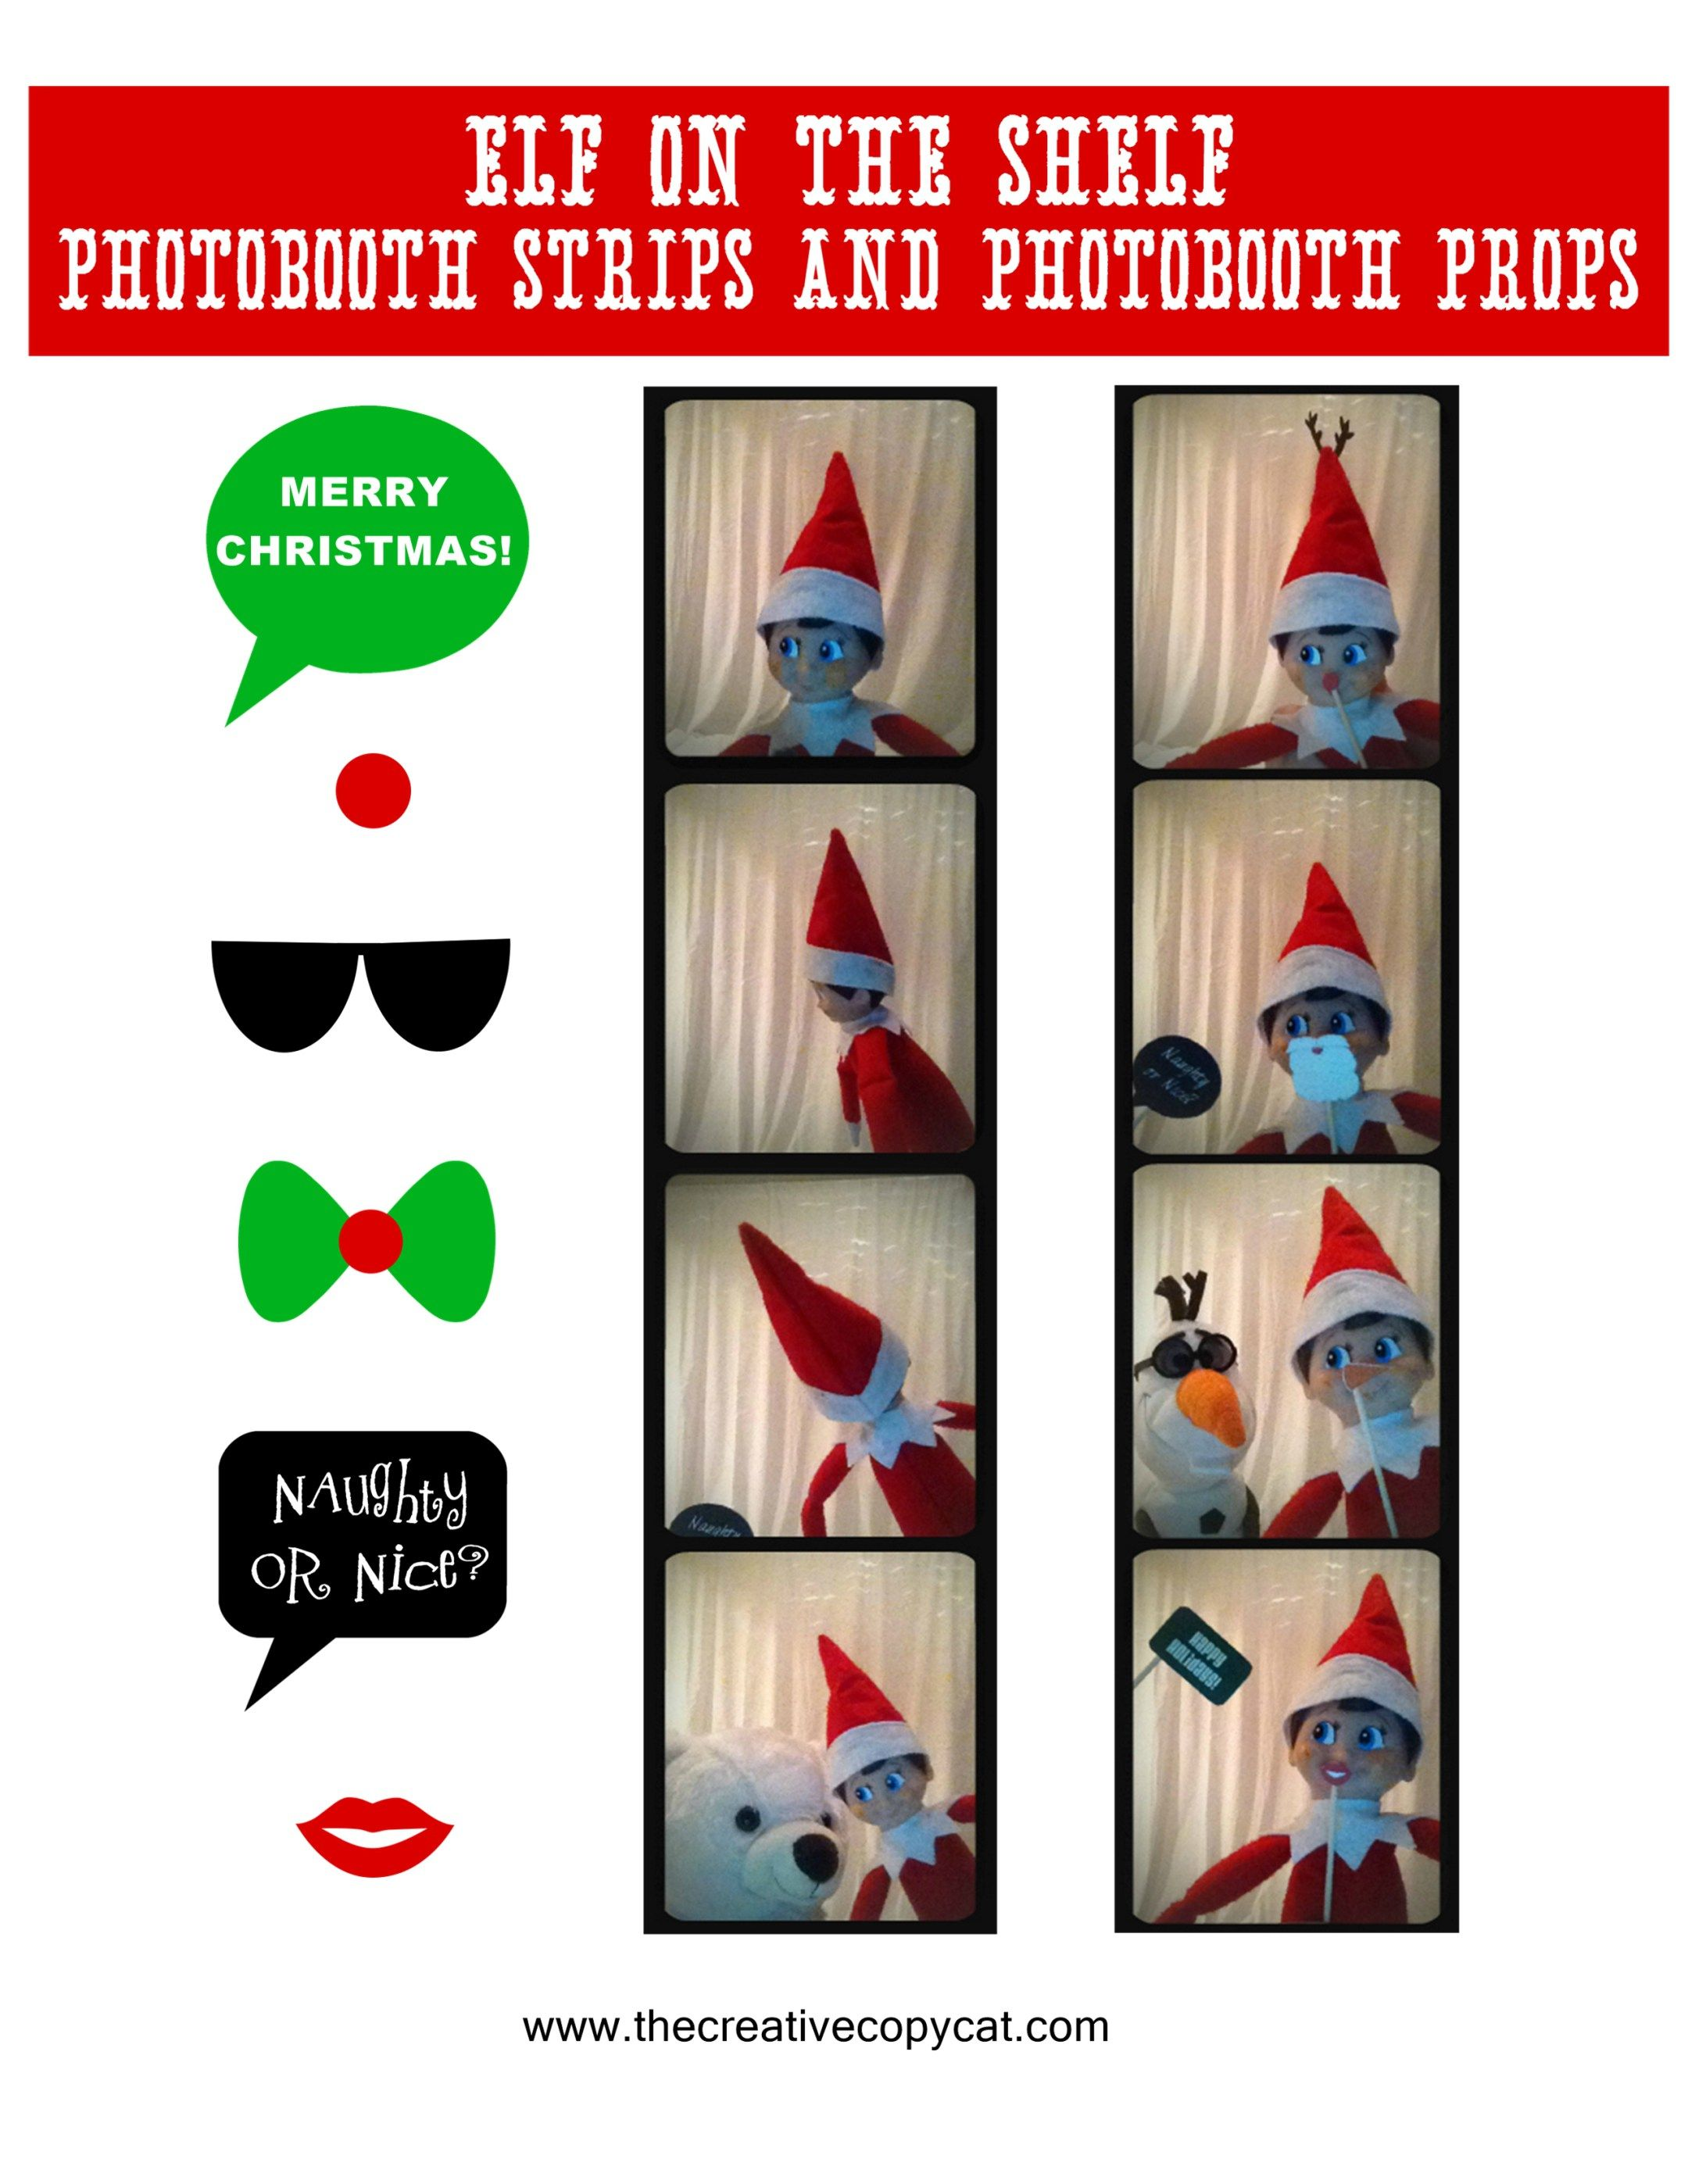 image about Elf on the Shelf Printable Props referred to as Totally free Printables for elf upon the shelf sized photobooth props